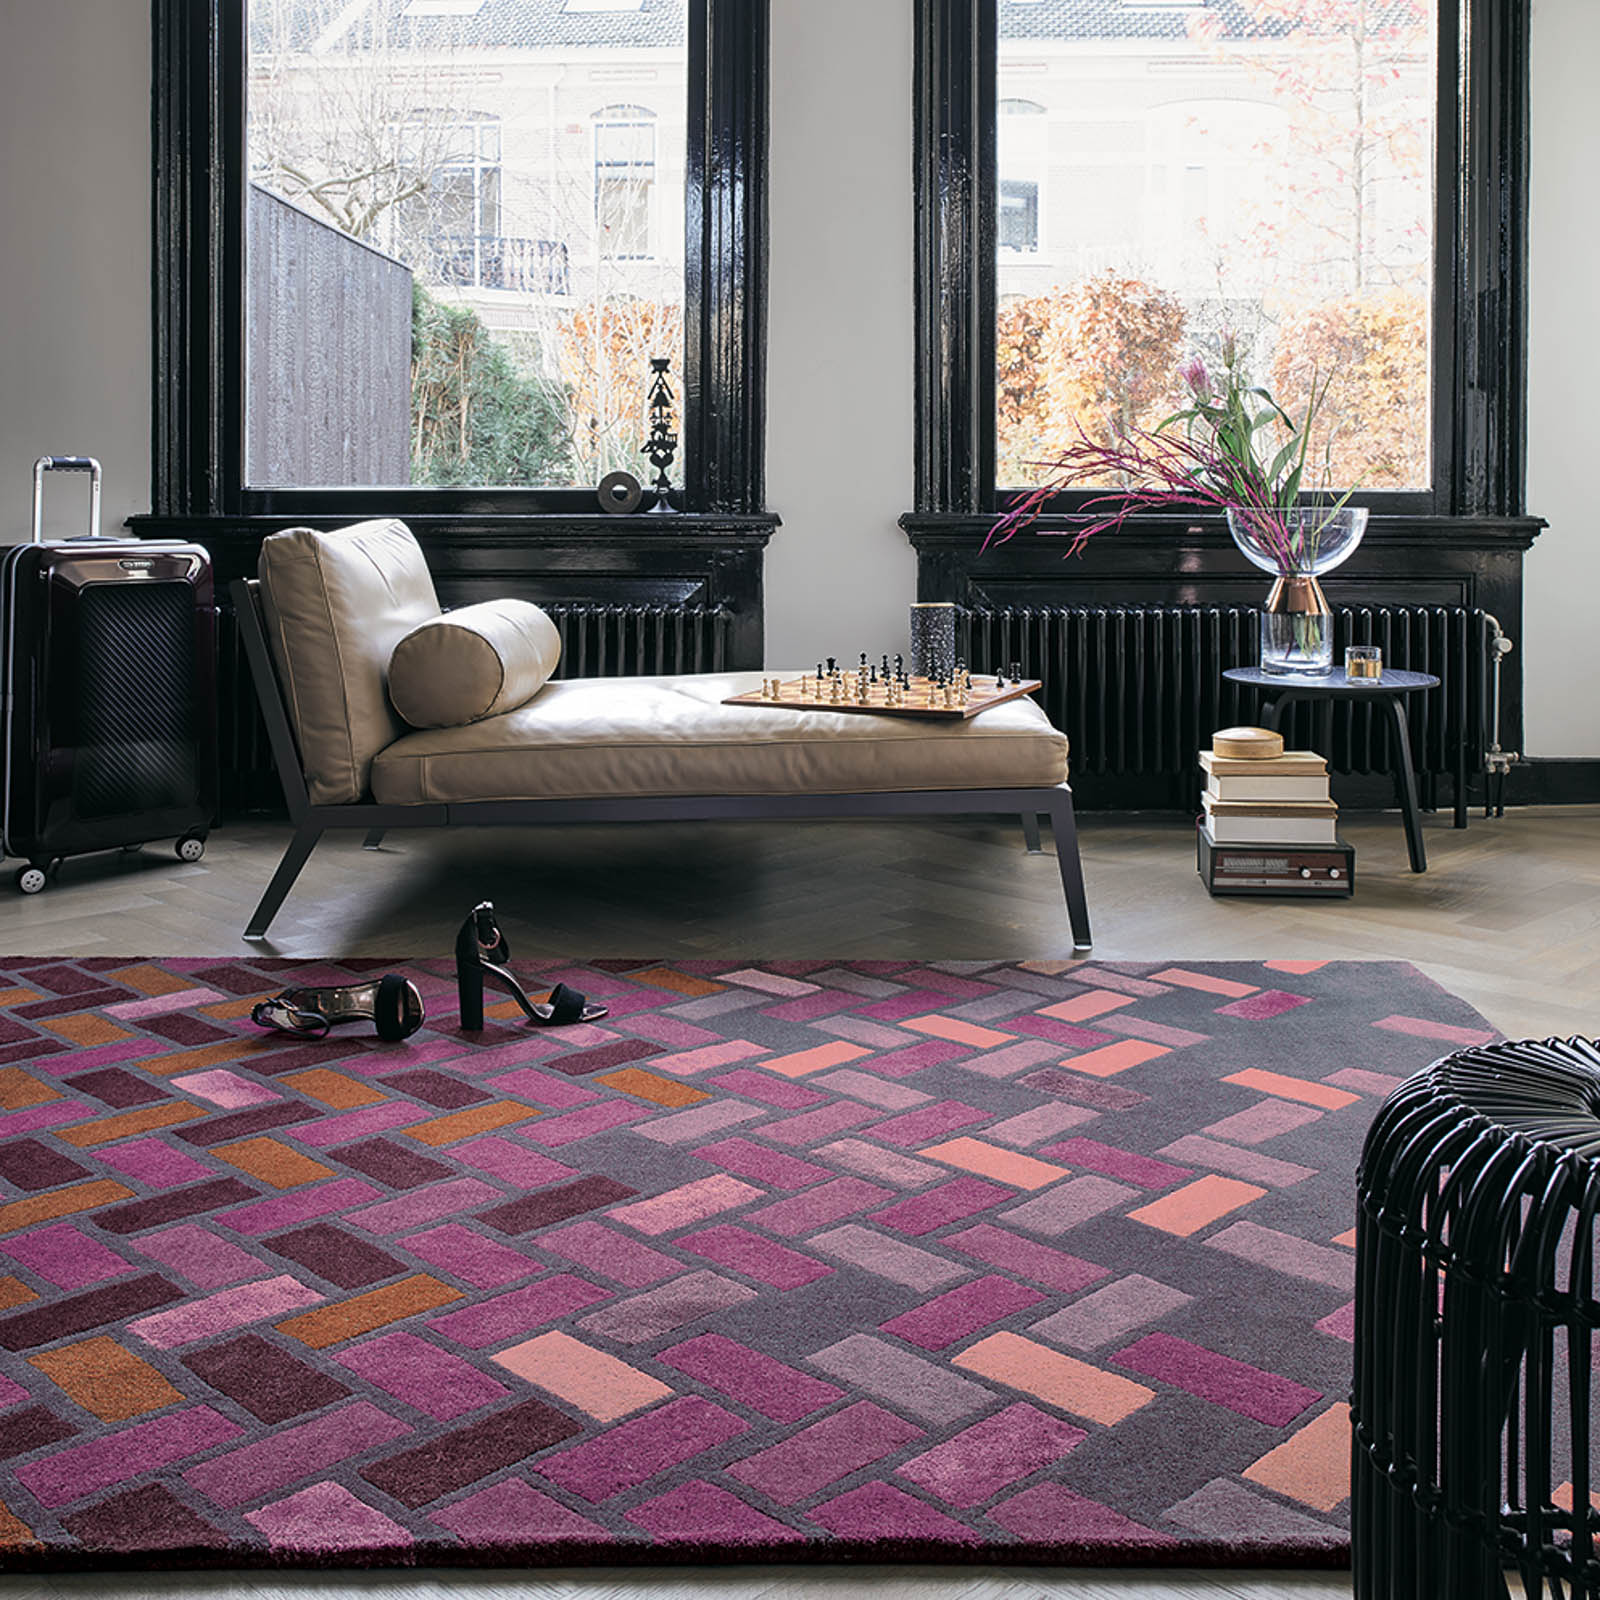 deep purple ted baker rug in a contemporary room